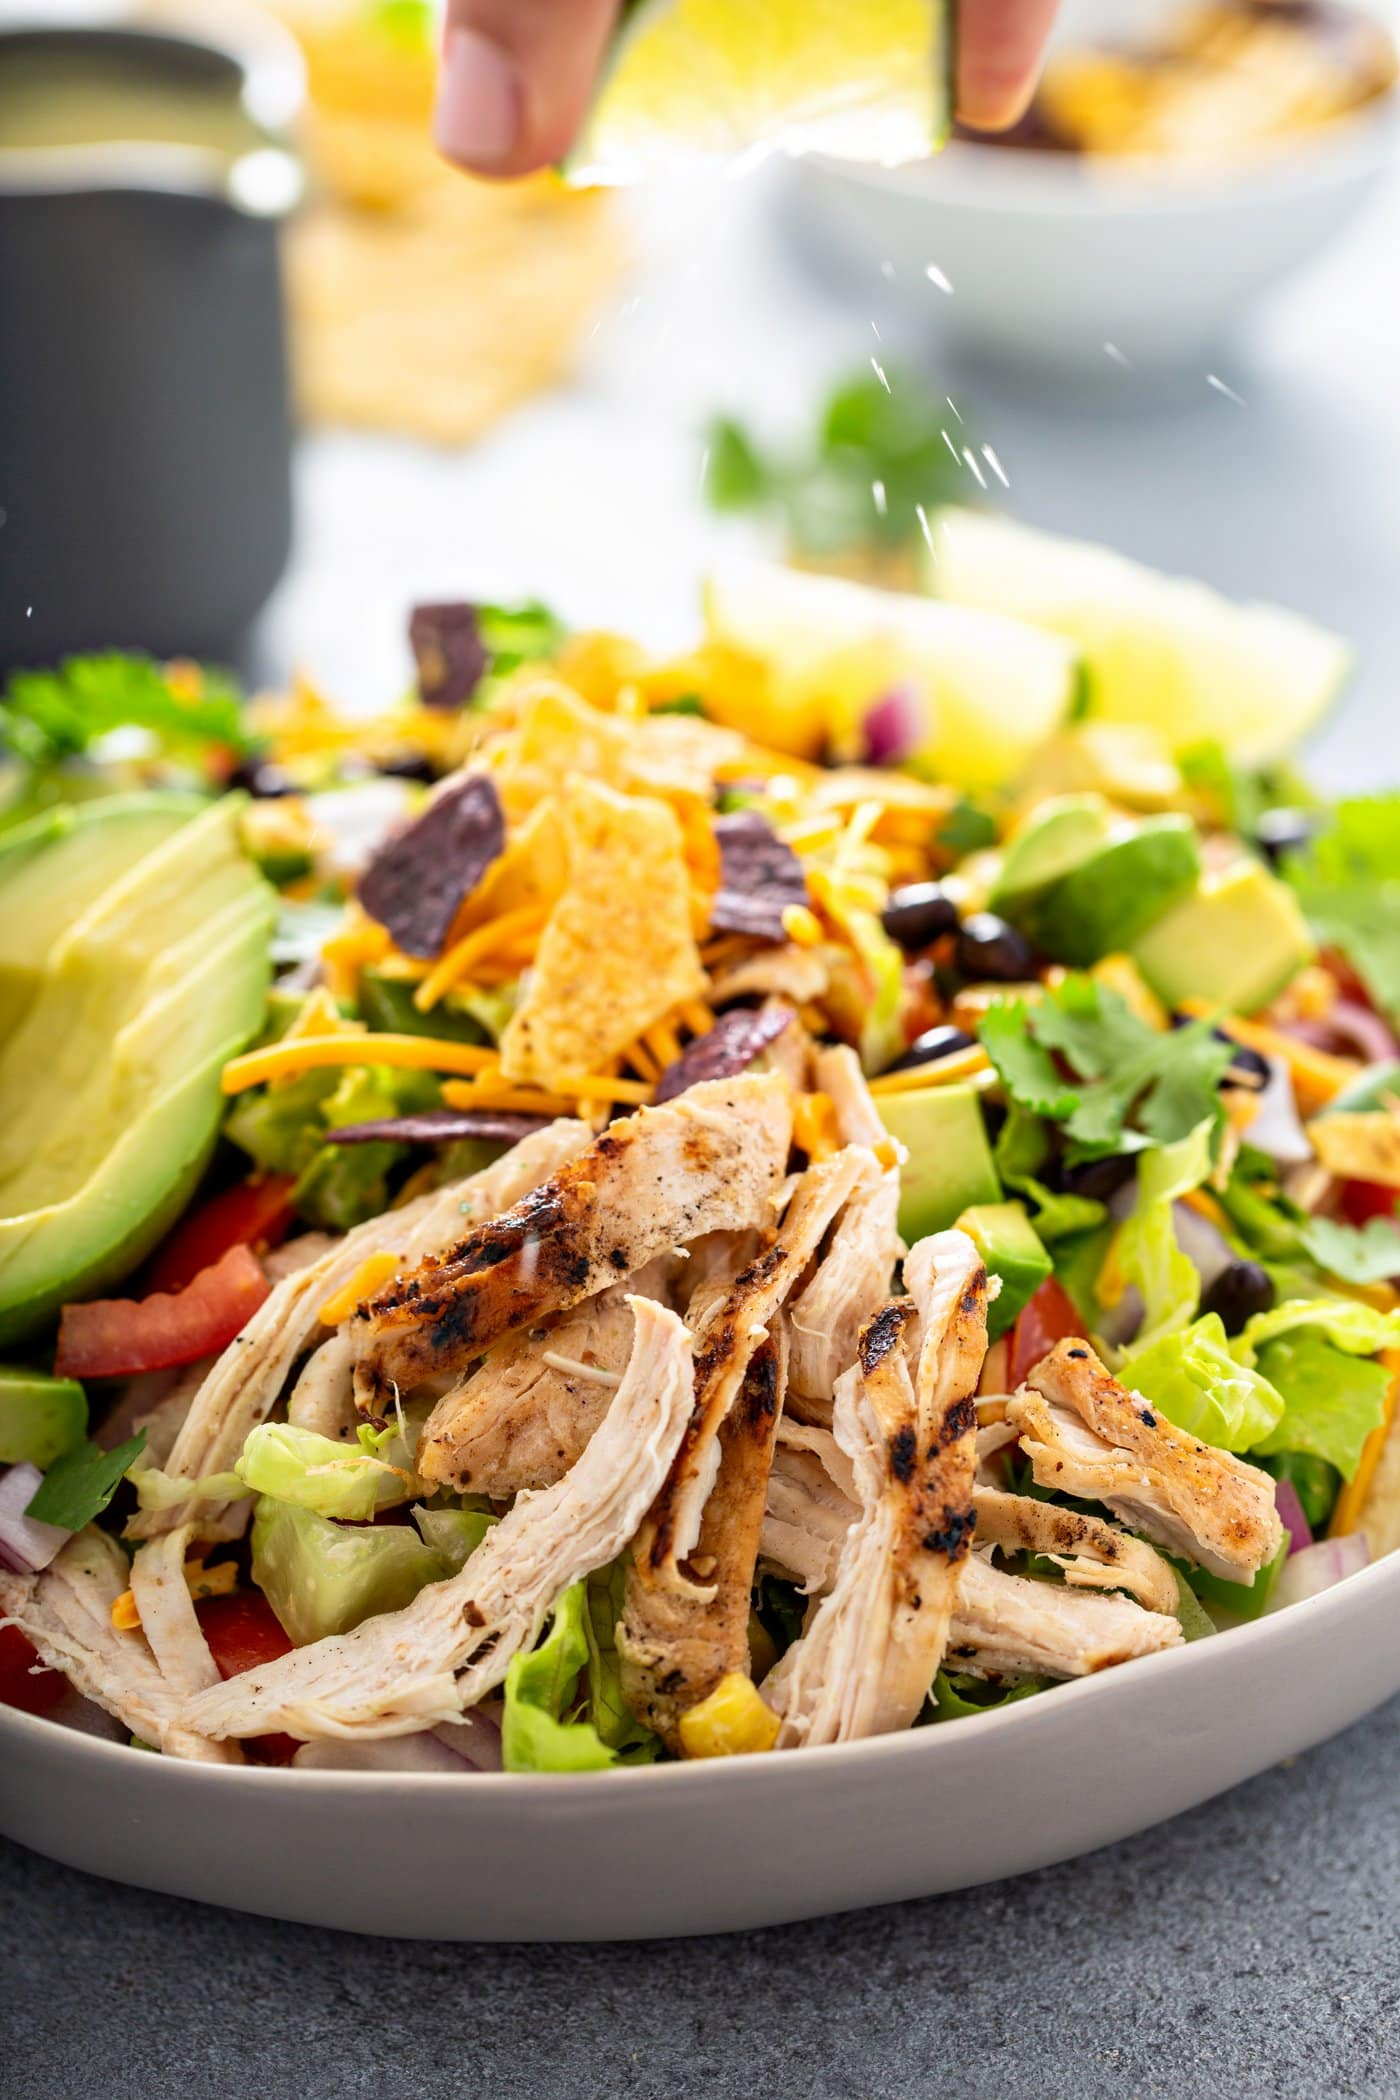 A close-up of a large serving bowl filled with chicken taco salad. It contains shredded chicken, beans, corn, cilantro, tomatoes, red onions, and avocados. There are a couple of lime wedges next to the salad and chips and a container of dressing in the background.